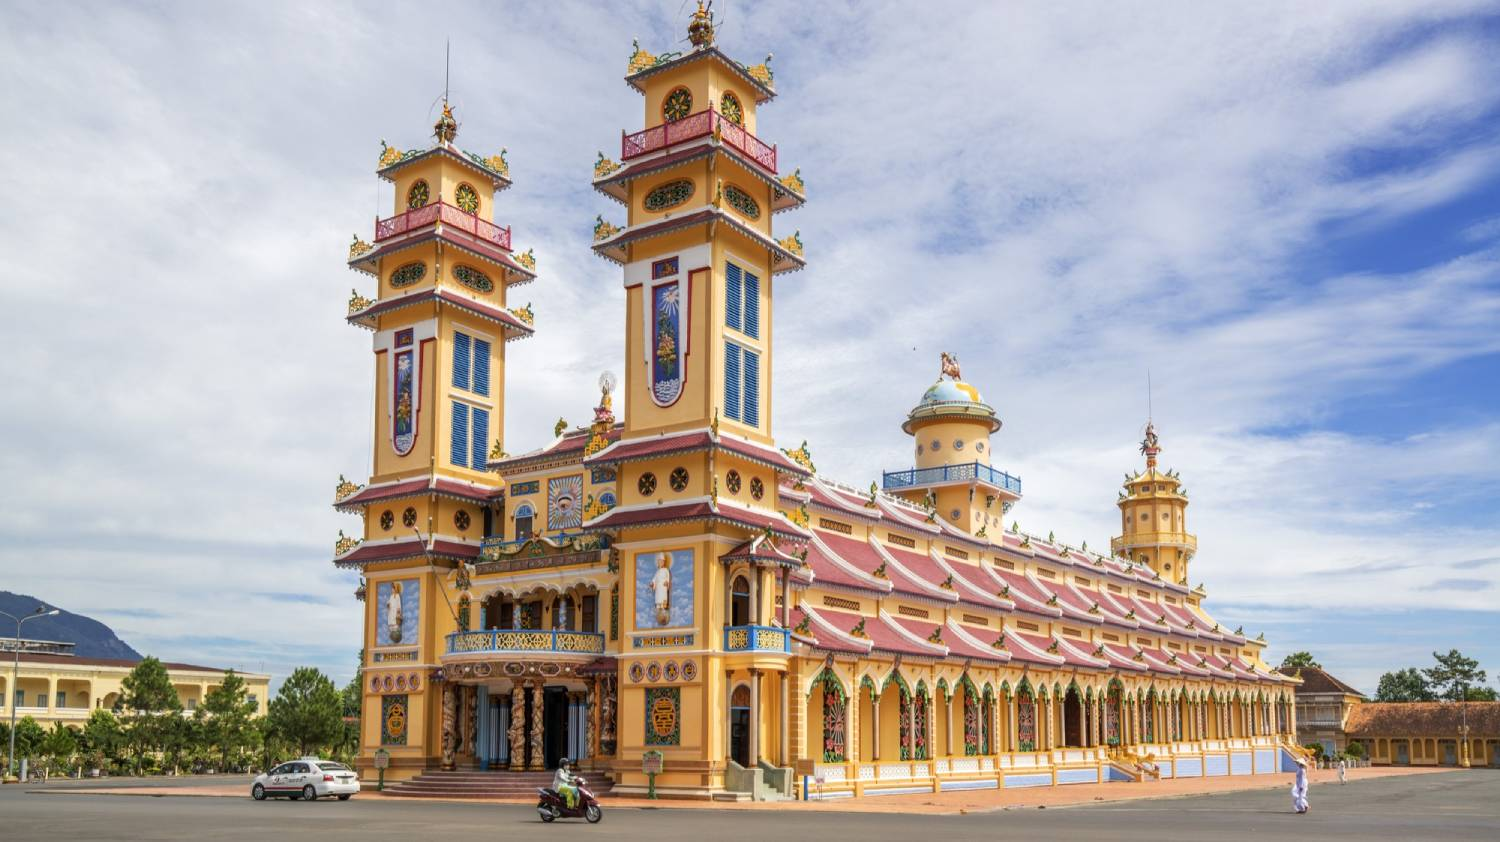 Cao Dai Temple - Things To Do In Ho Chi Minh City